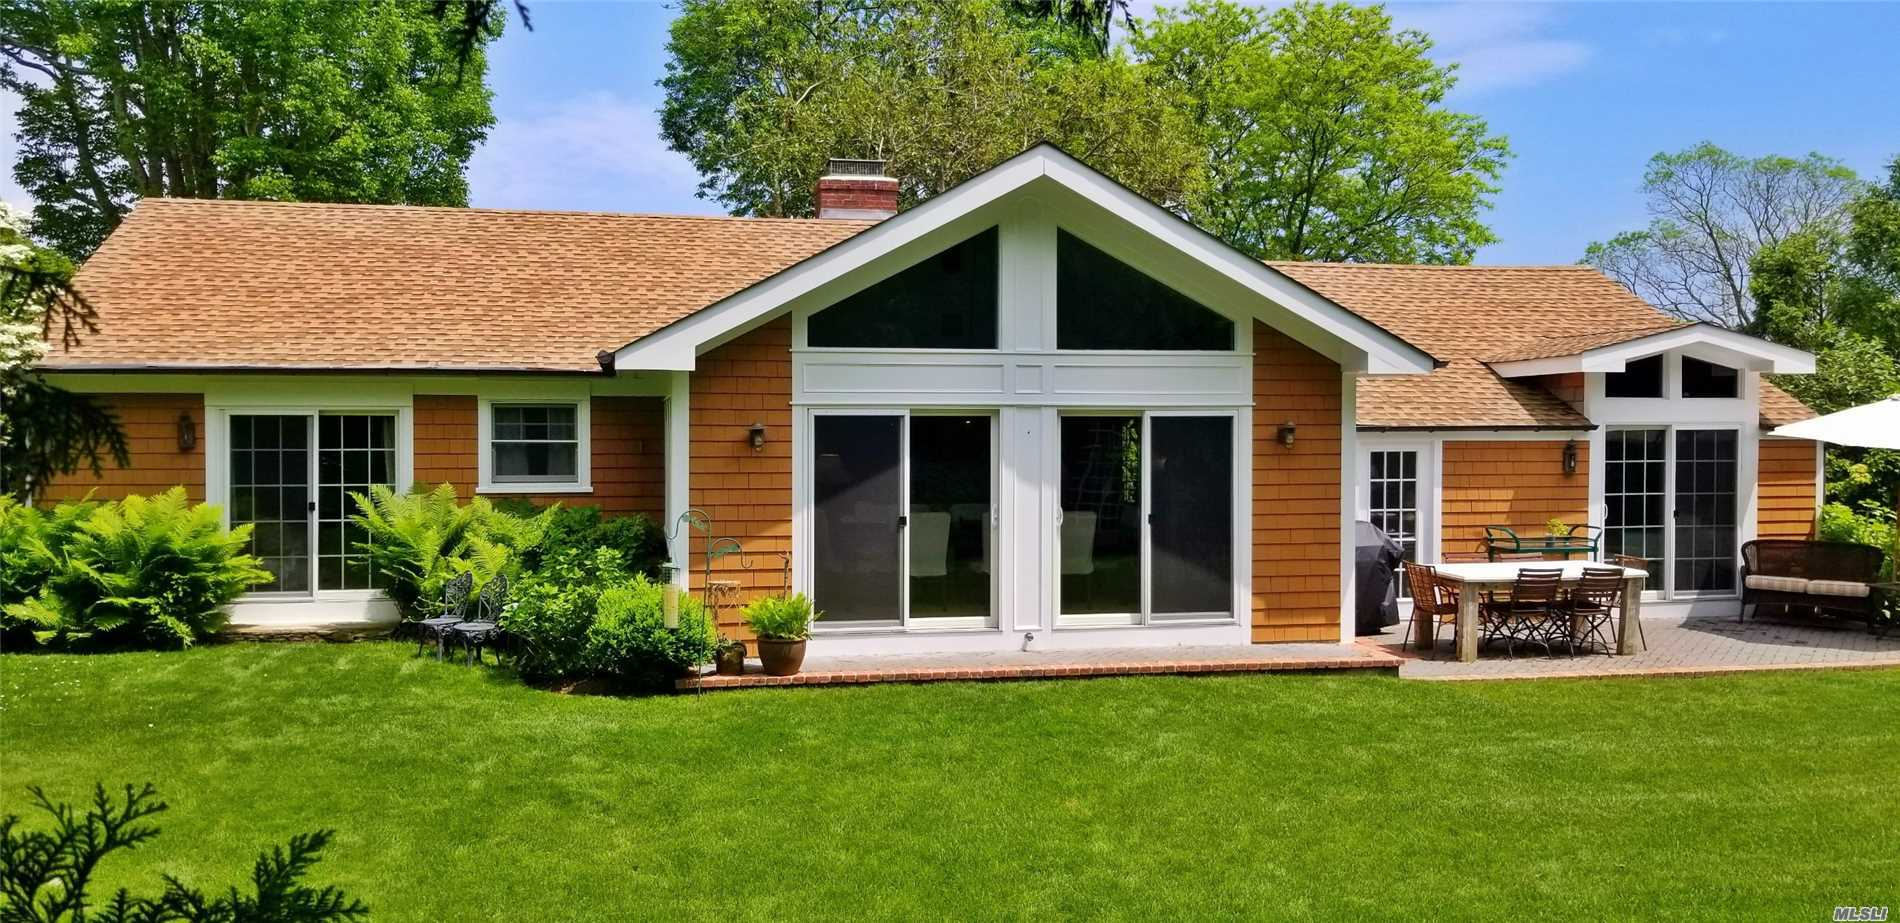 Photo of home for sale at 9 Boxwood St, East Hampton NY